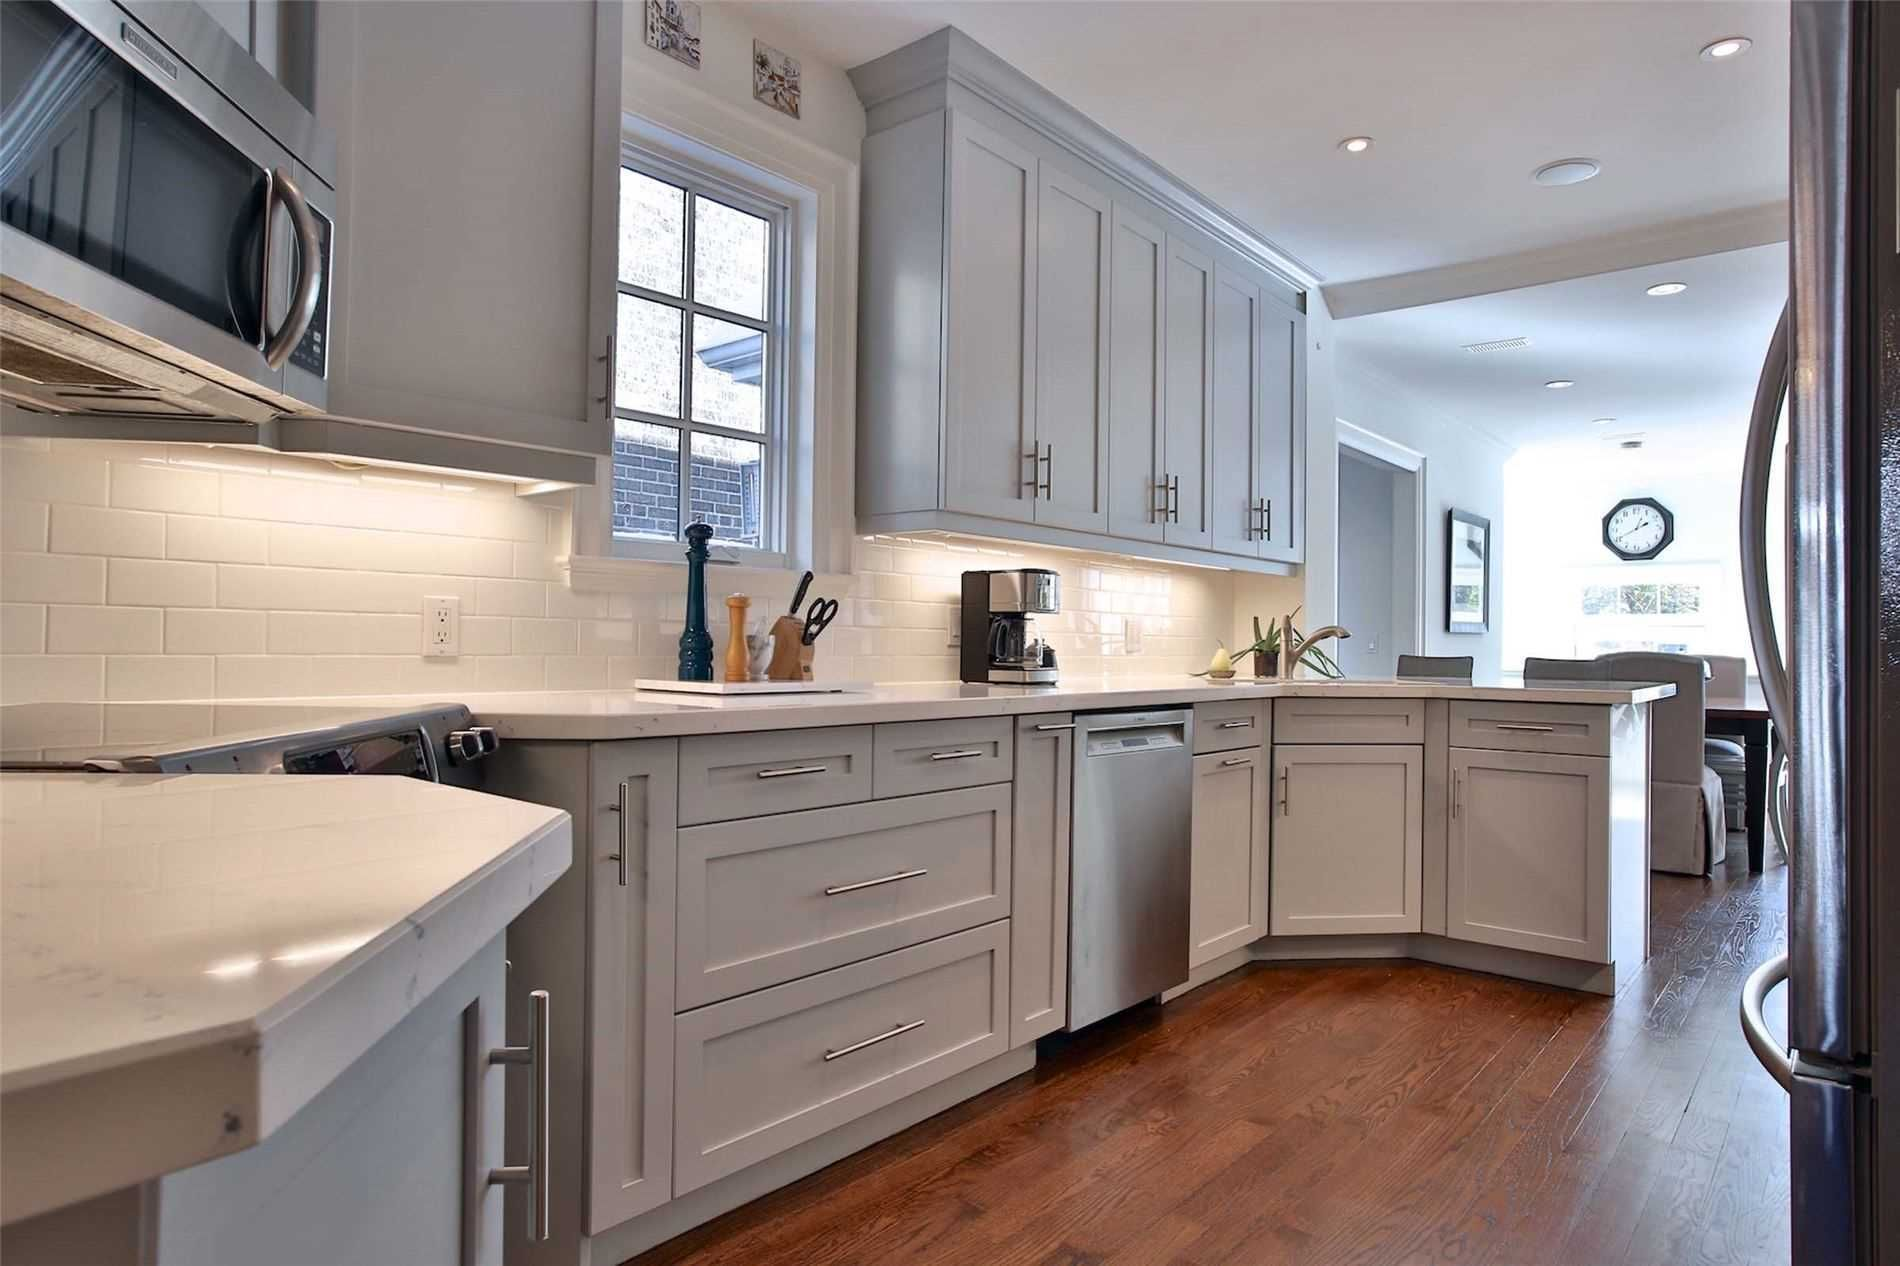 Photo 9: Photos: 181 W Glengrove Avenue in Toronto: Lawrence Park South House (2-Storey) for sale (Toronto C04)  : MLS®# C4633543